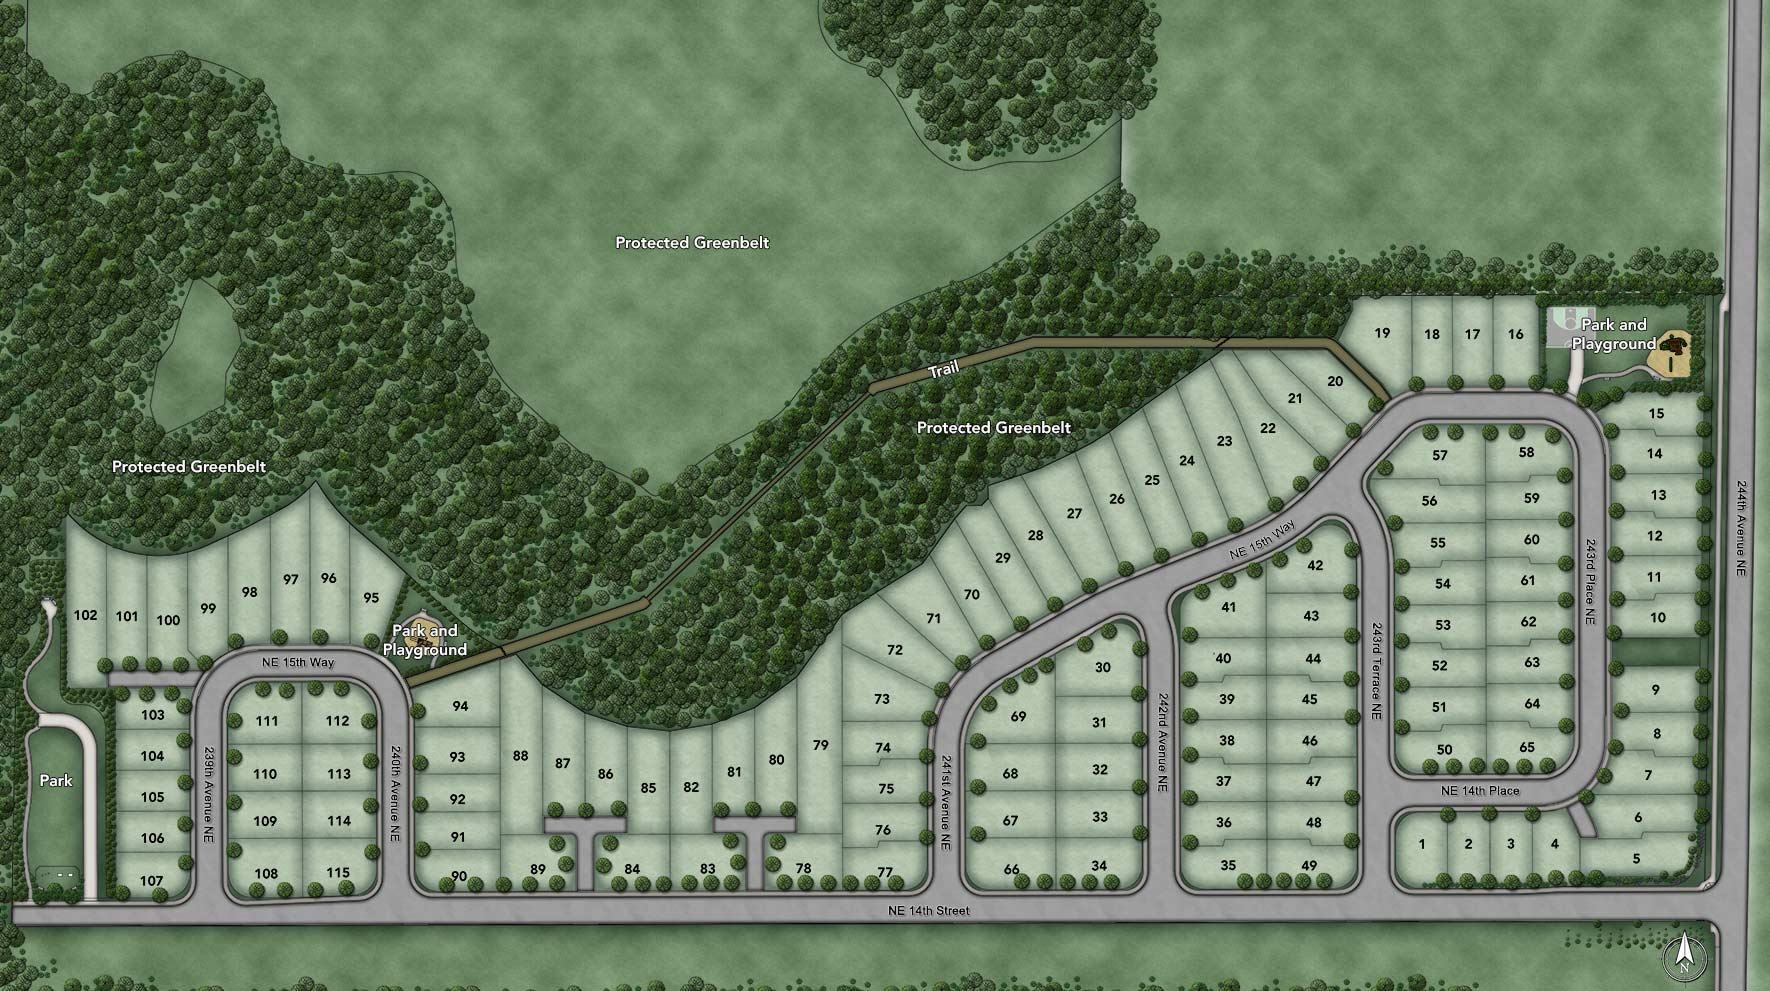 Canterbury Park Site Plan